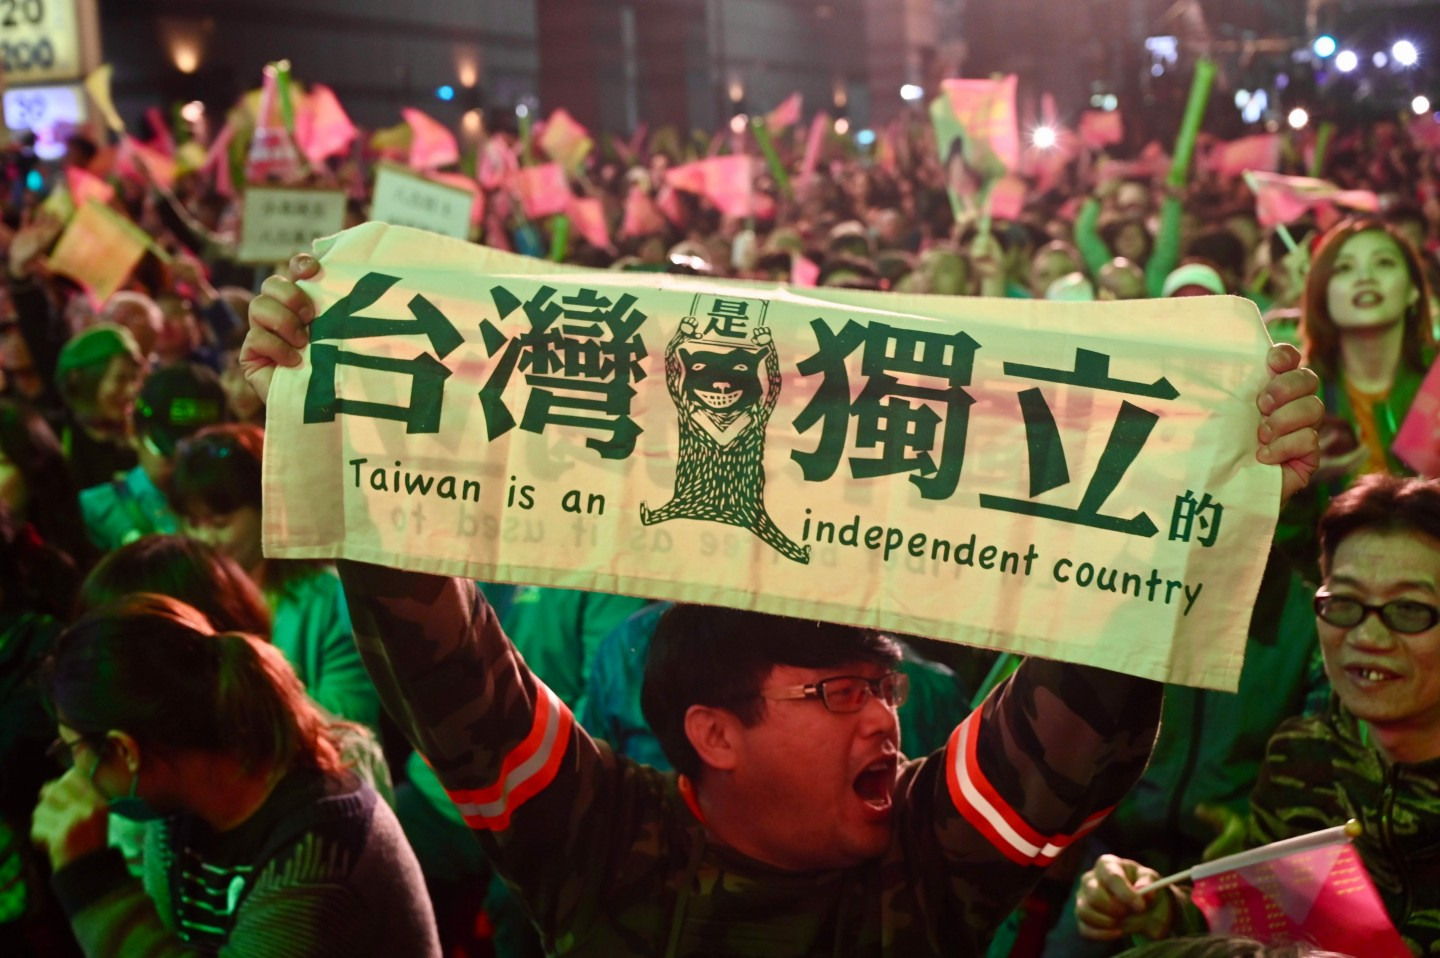 A supporter of Taiwan President Tsai Ing-wen displays a banner outside the campaign headquarters in Taipei on 11 January 2020. (Sam Yeh/AFP)